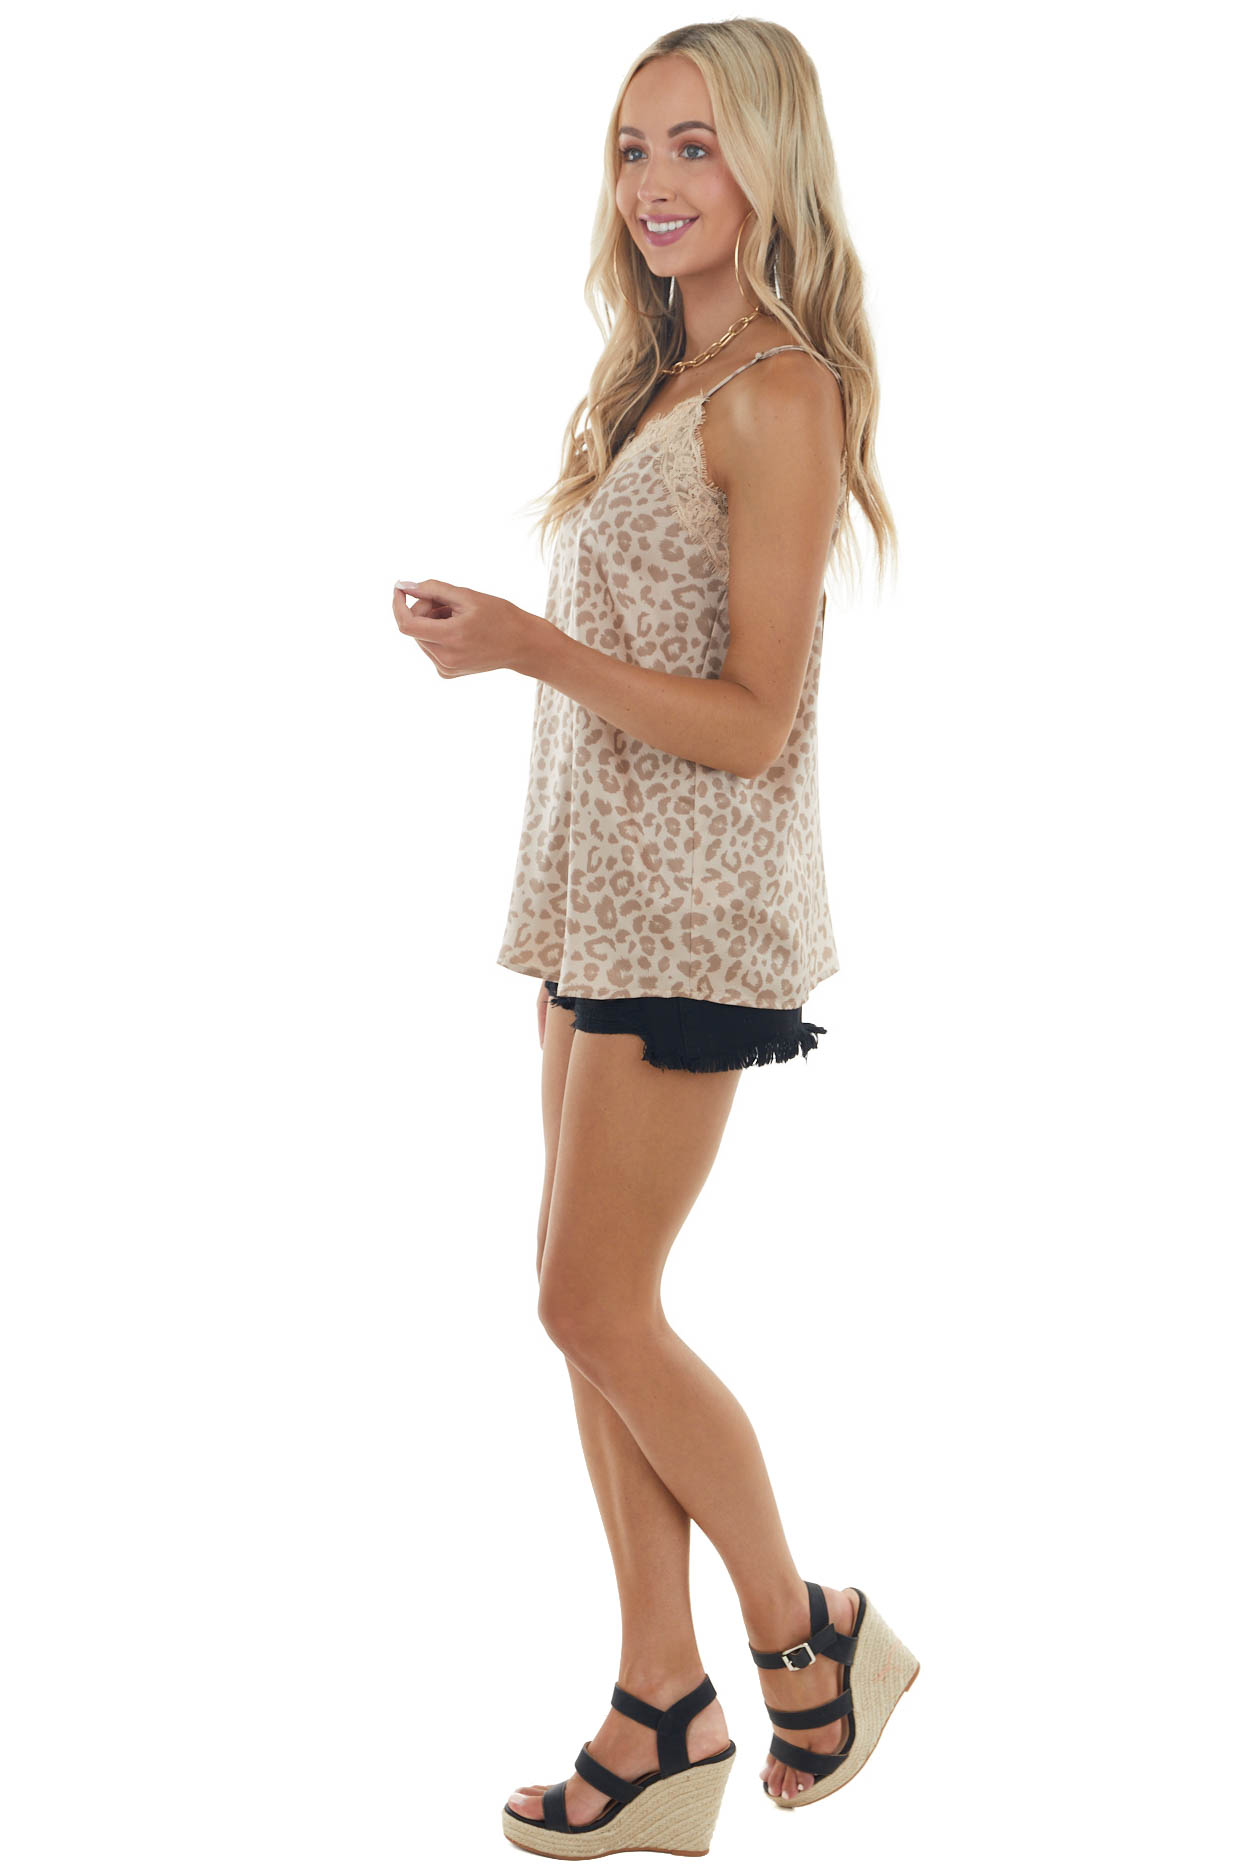 Latte Leopard Print Sleeveless Top with Lace Trim Details